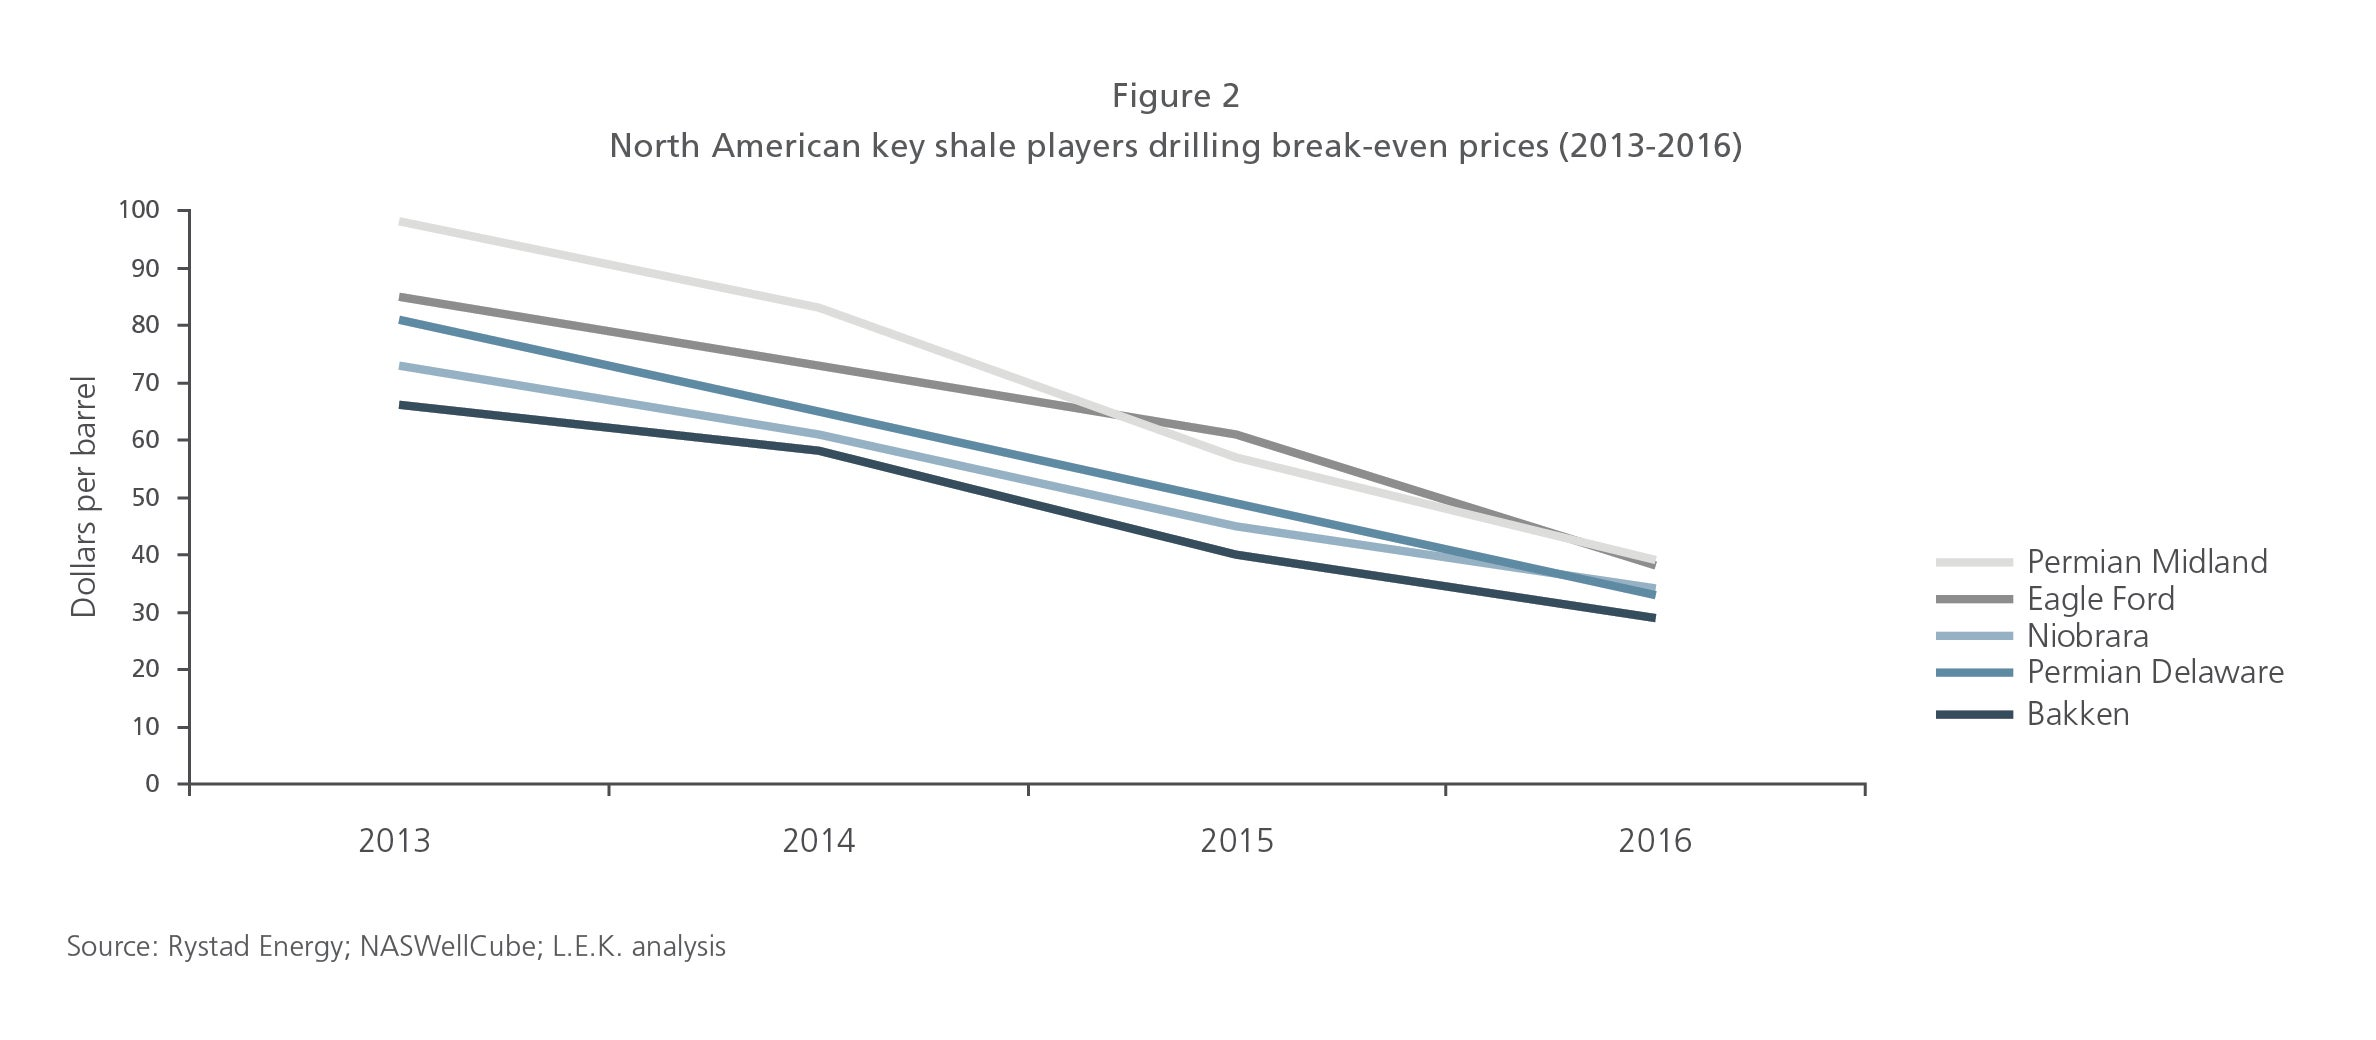 North American key shale players drilling break-even prices (2013-2016)